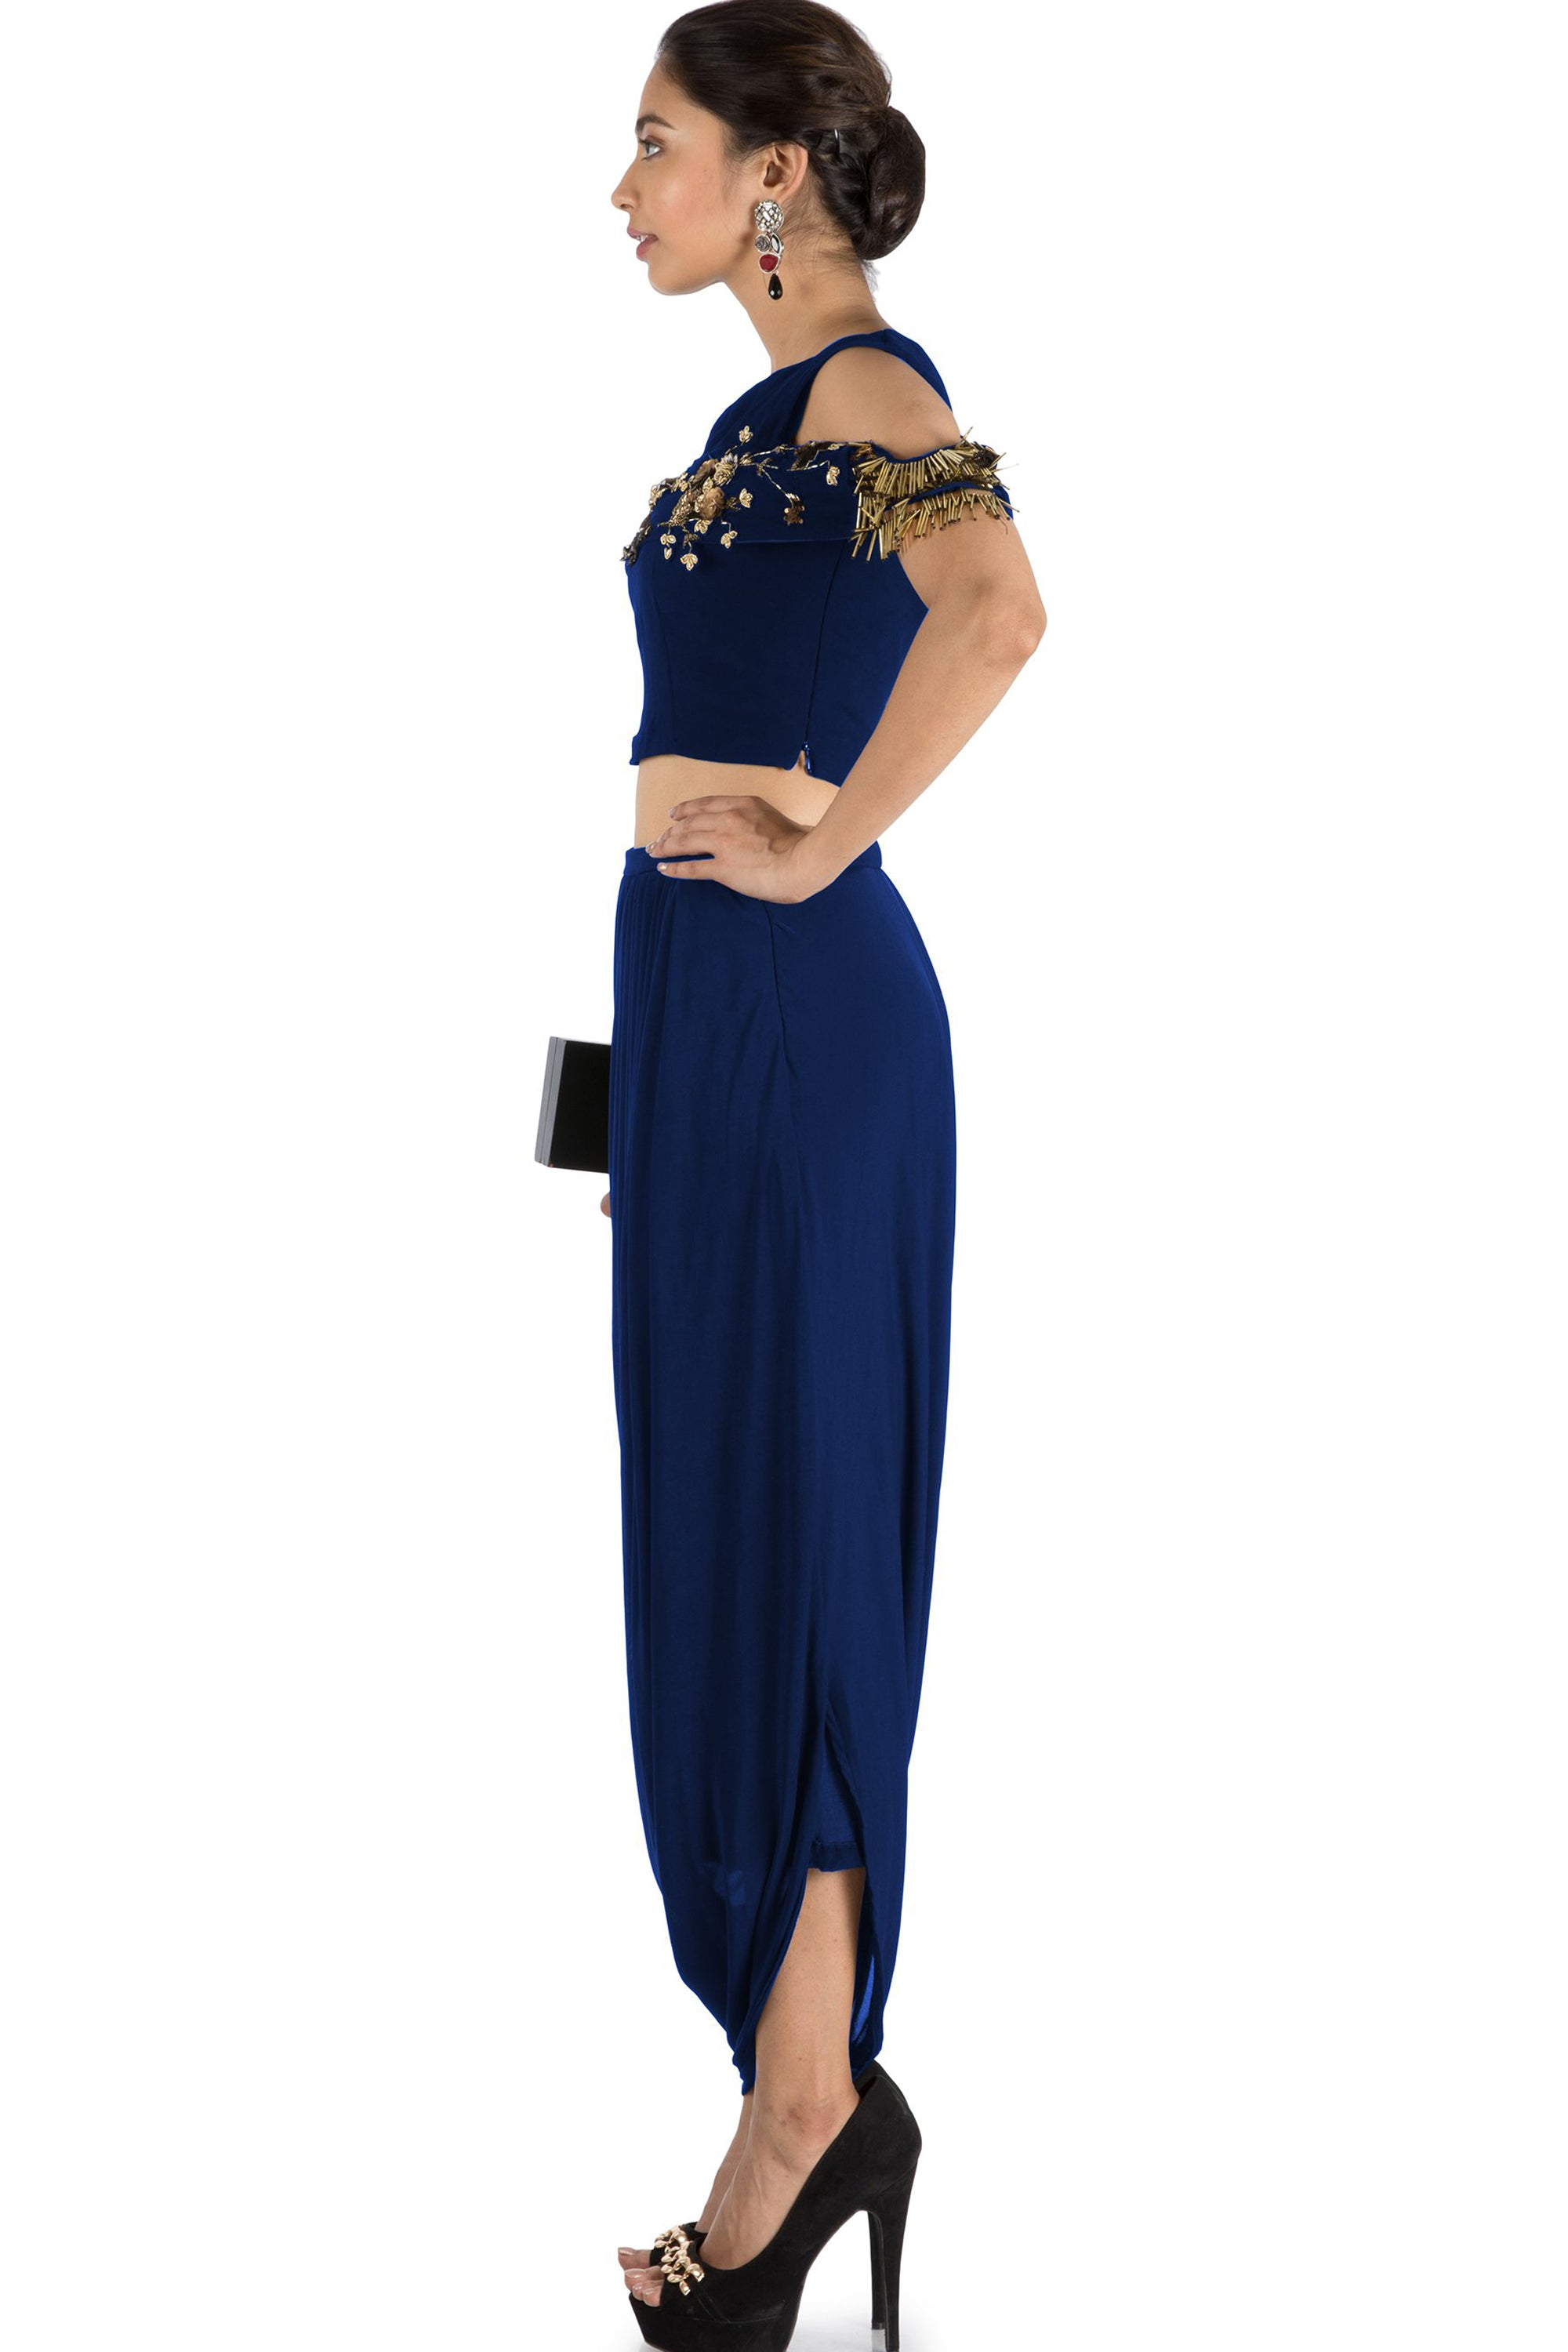 c32683b4d ... Navy Blue Bandeau Crop Top and Dhoti Skirt Side ...